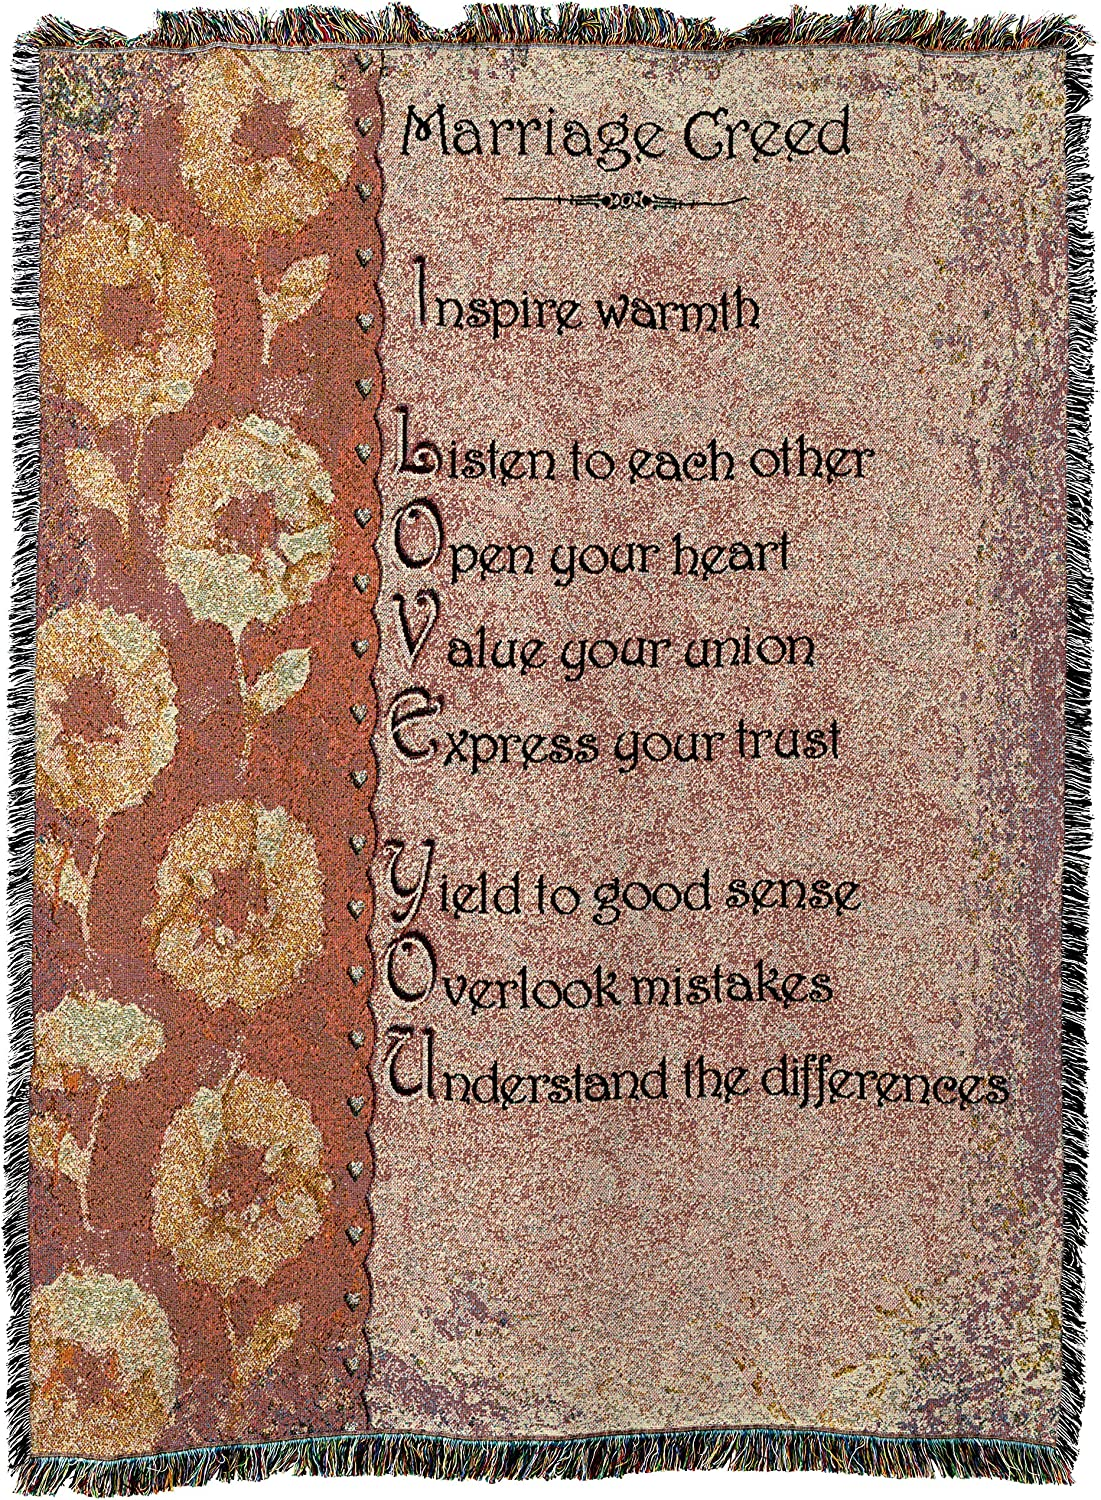 Pure Country Weavers   Marriage Creed Wedding Gift Woven Tapestry Throw Blanket with Fringe Cotton USA 72x54